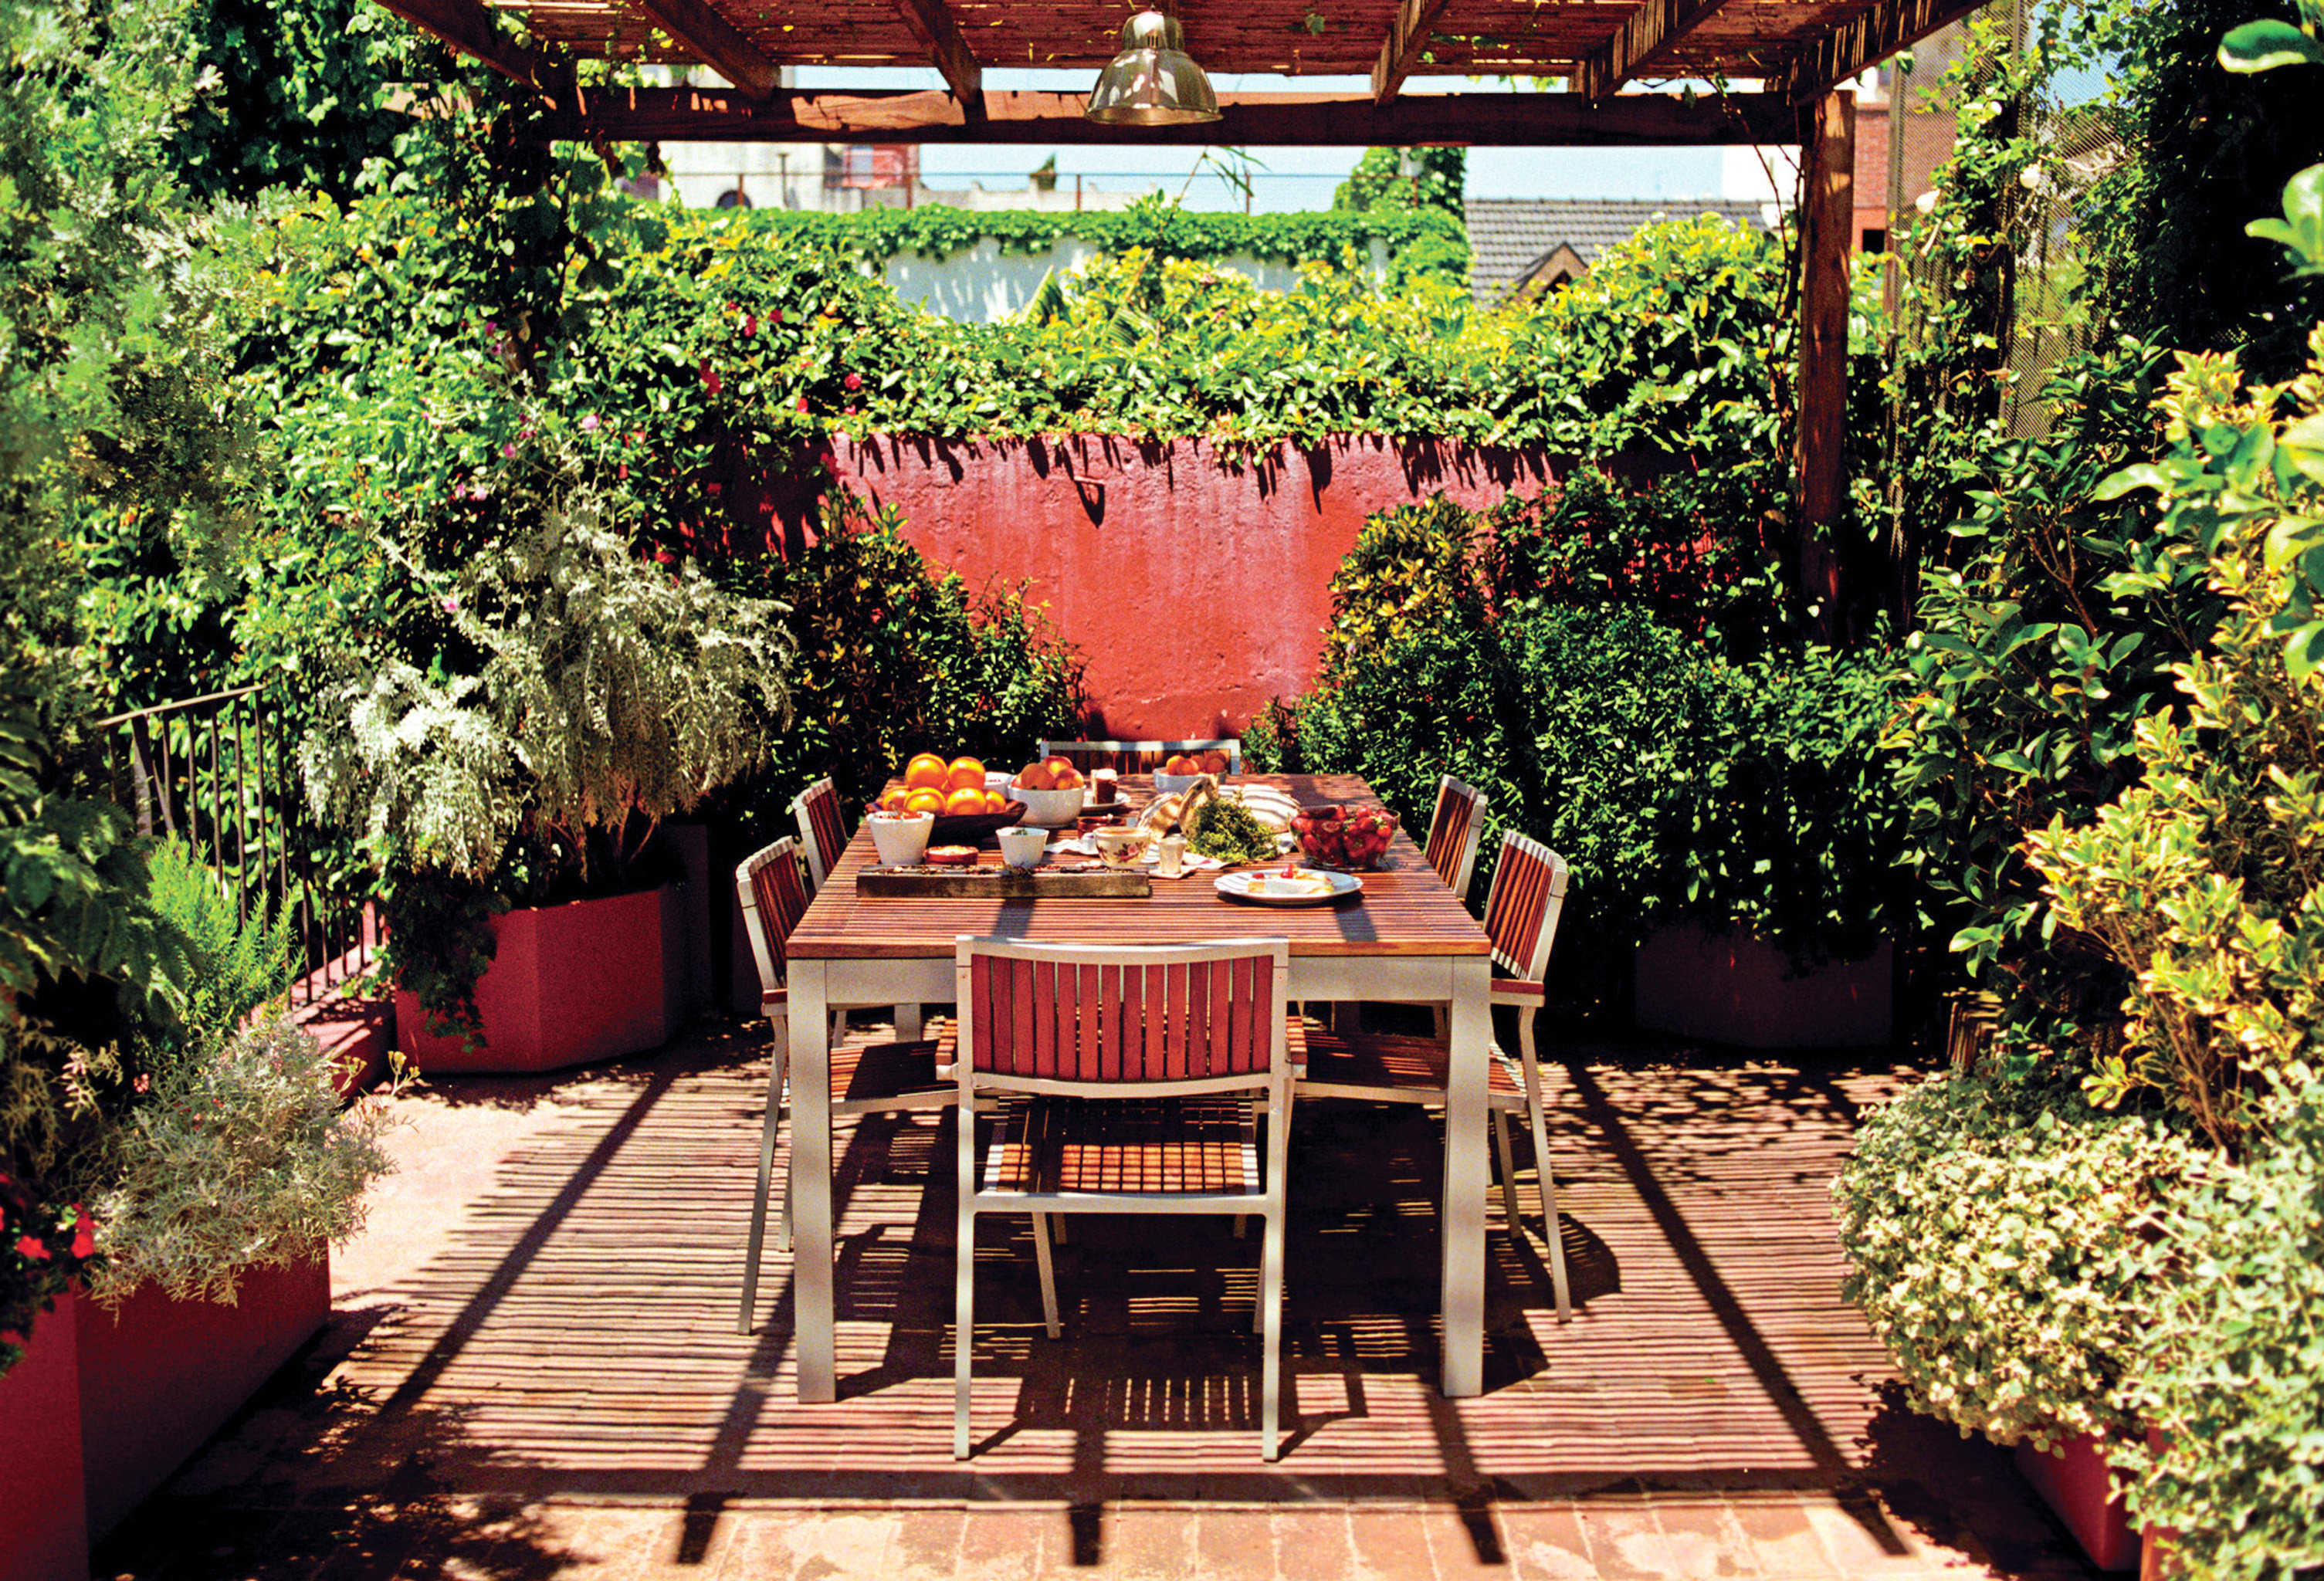 Dining Drink Eat Grounds Outdoors tree ground plant building backyard Garden house yard home Courtyard outdoor structure flower cottage porch restaurant Patio bushes surrounded